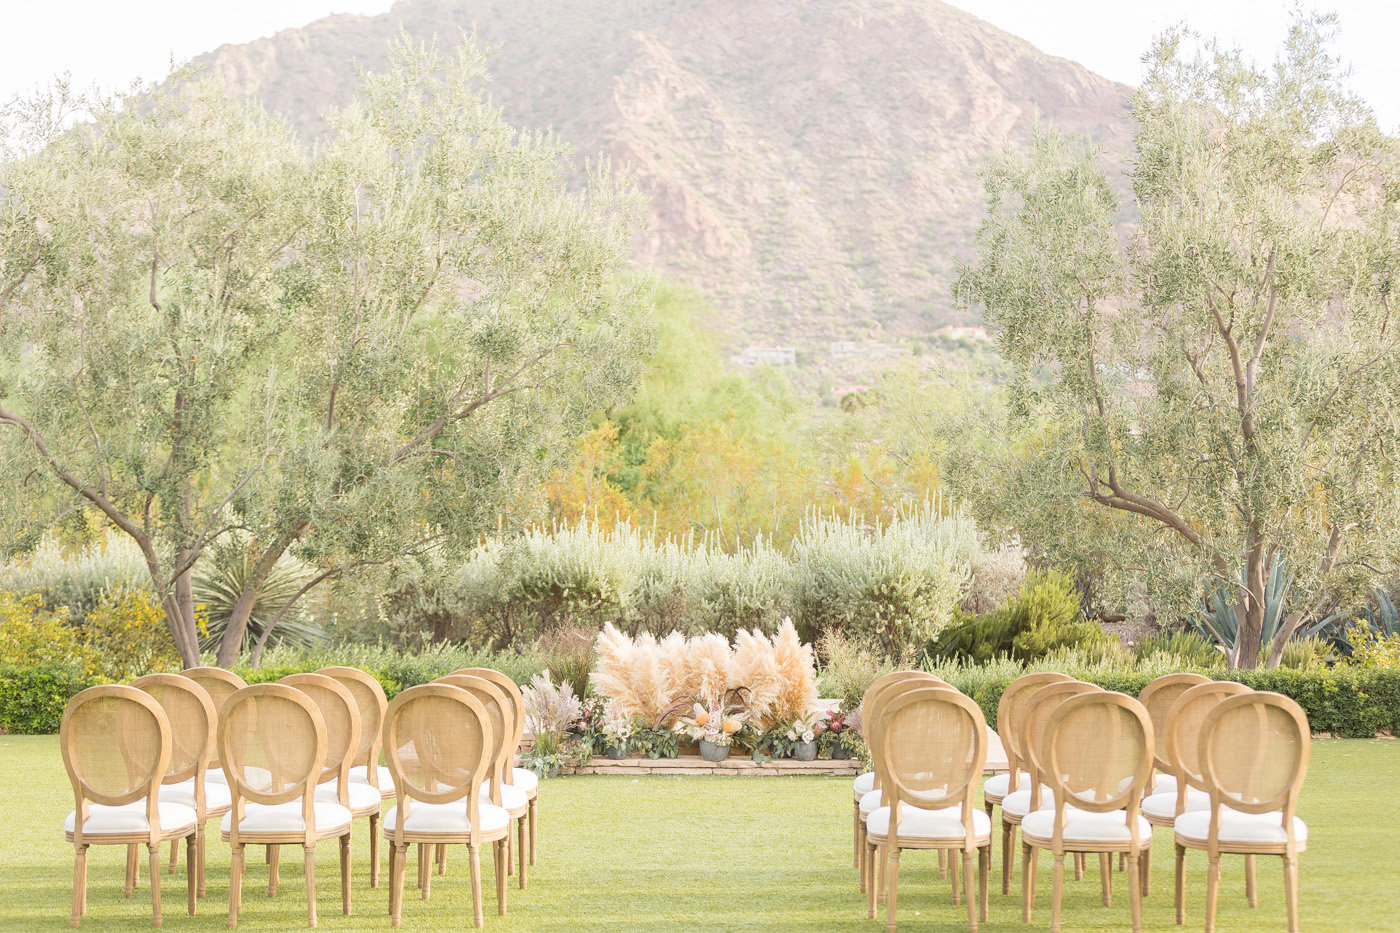 ceremony setup - photo by Karlee K Photography http://ruffledblog.com/cheerful-desert-wedding-inspiration-with-bright-yellow